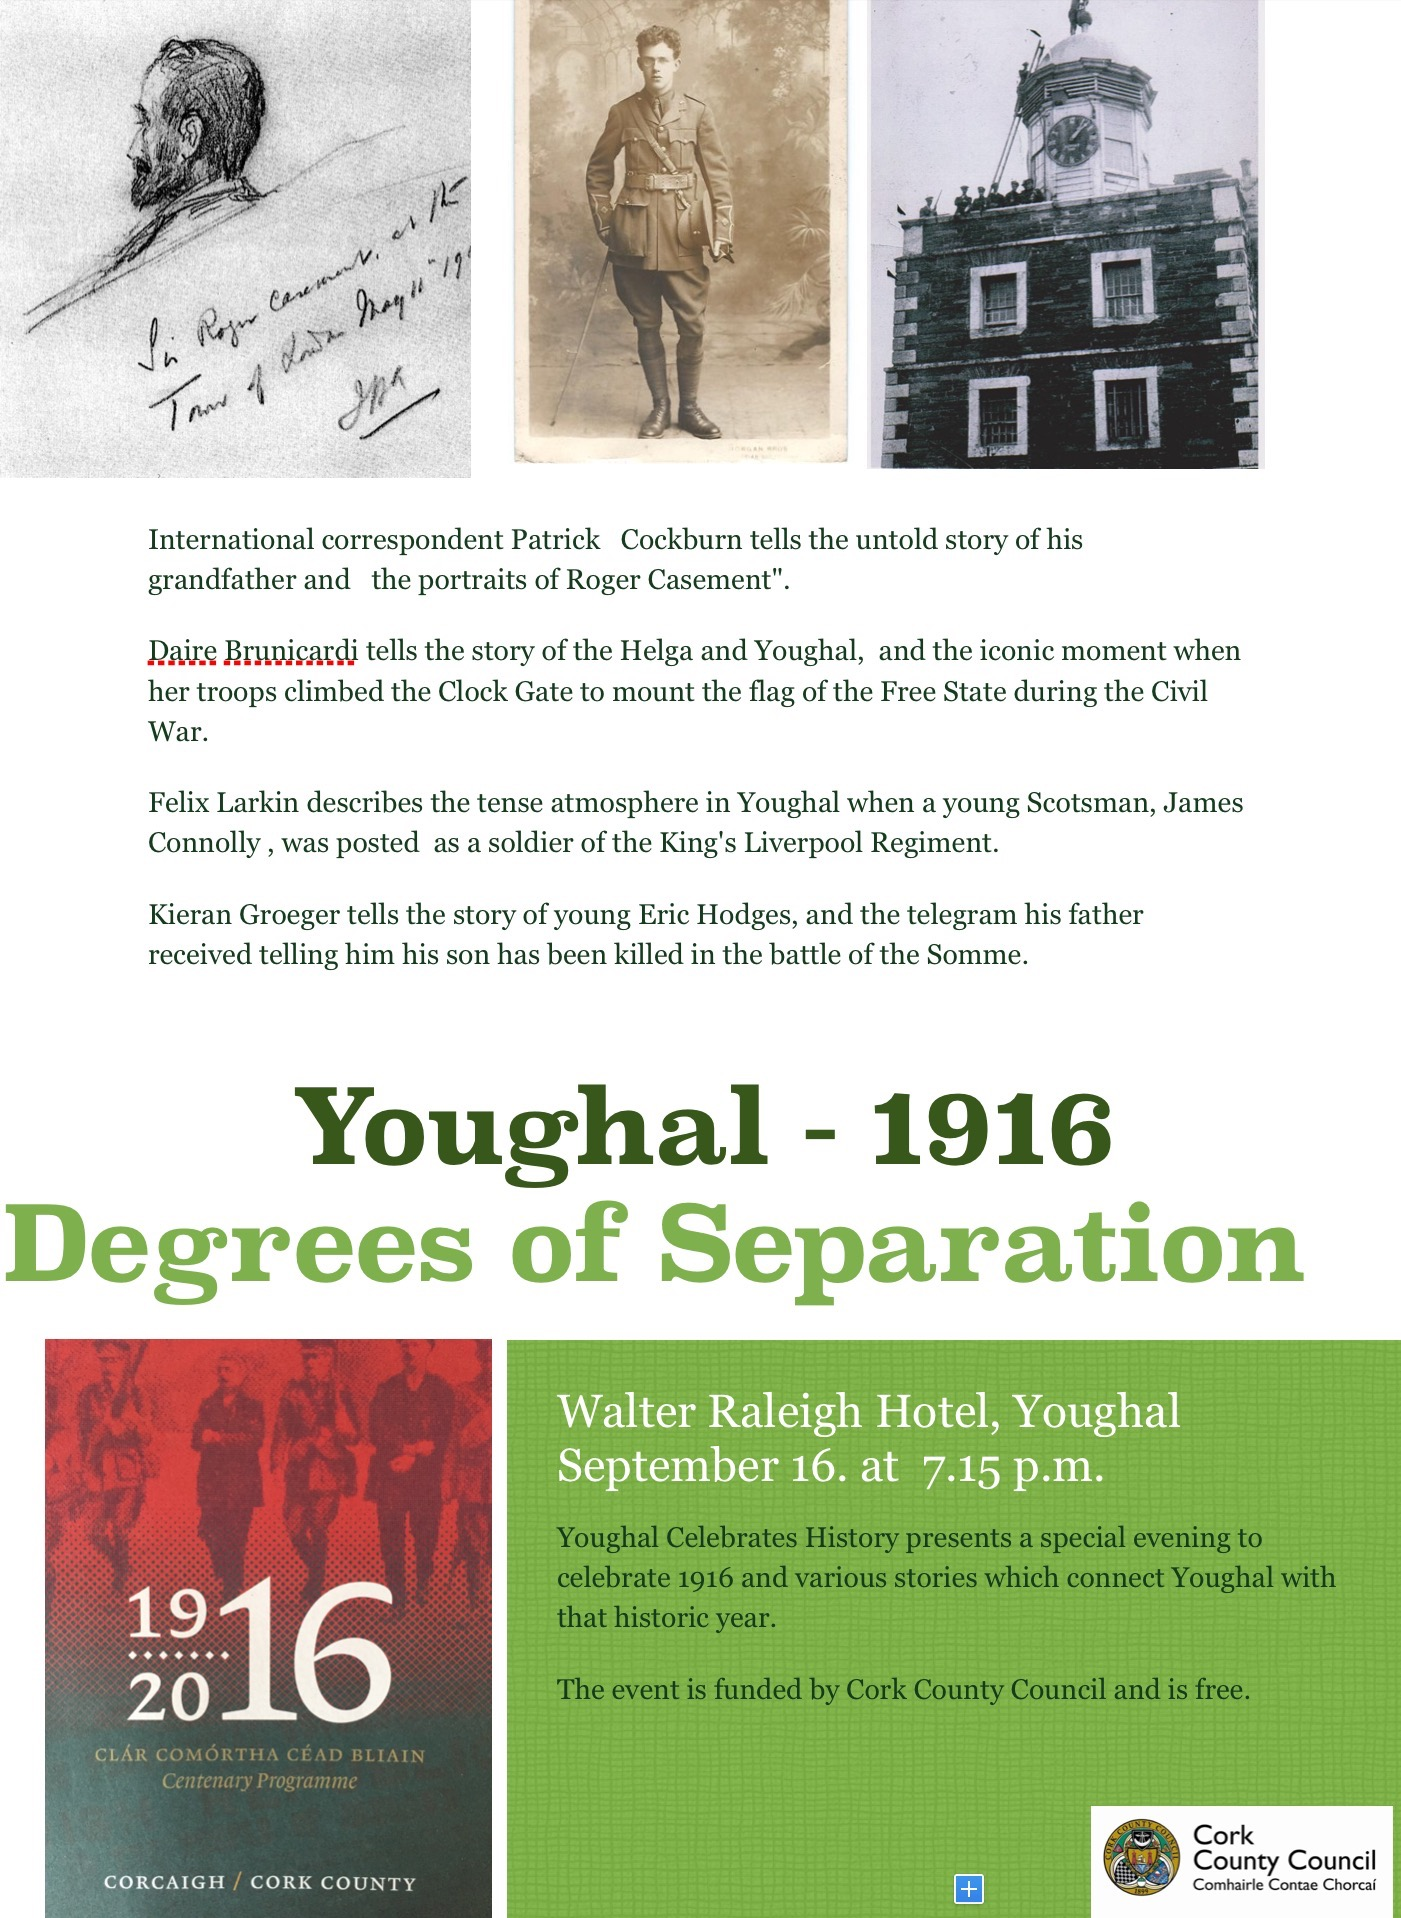 1916 Degrees of Separation